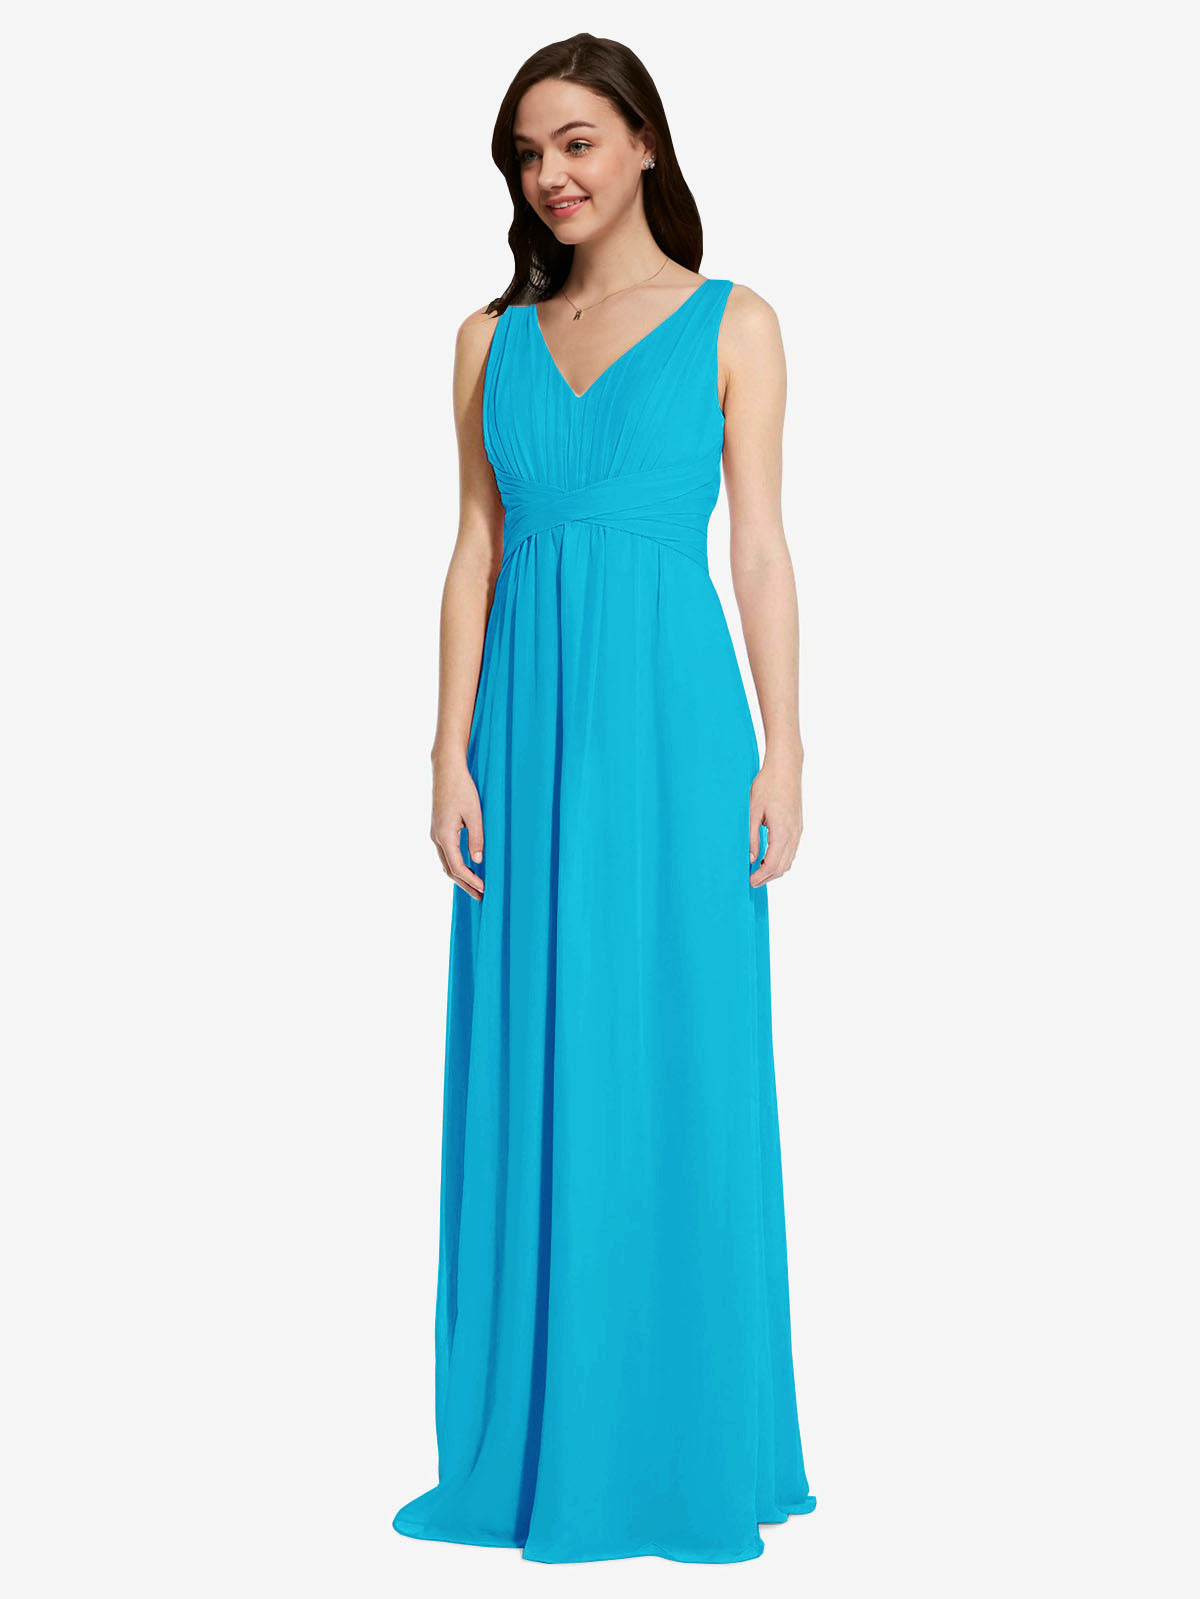 Long A-Line V-Neck Sleeveless Turquoise Chiffon Bridesmaid Dress Auckland